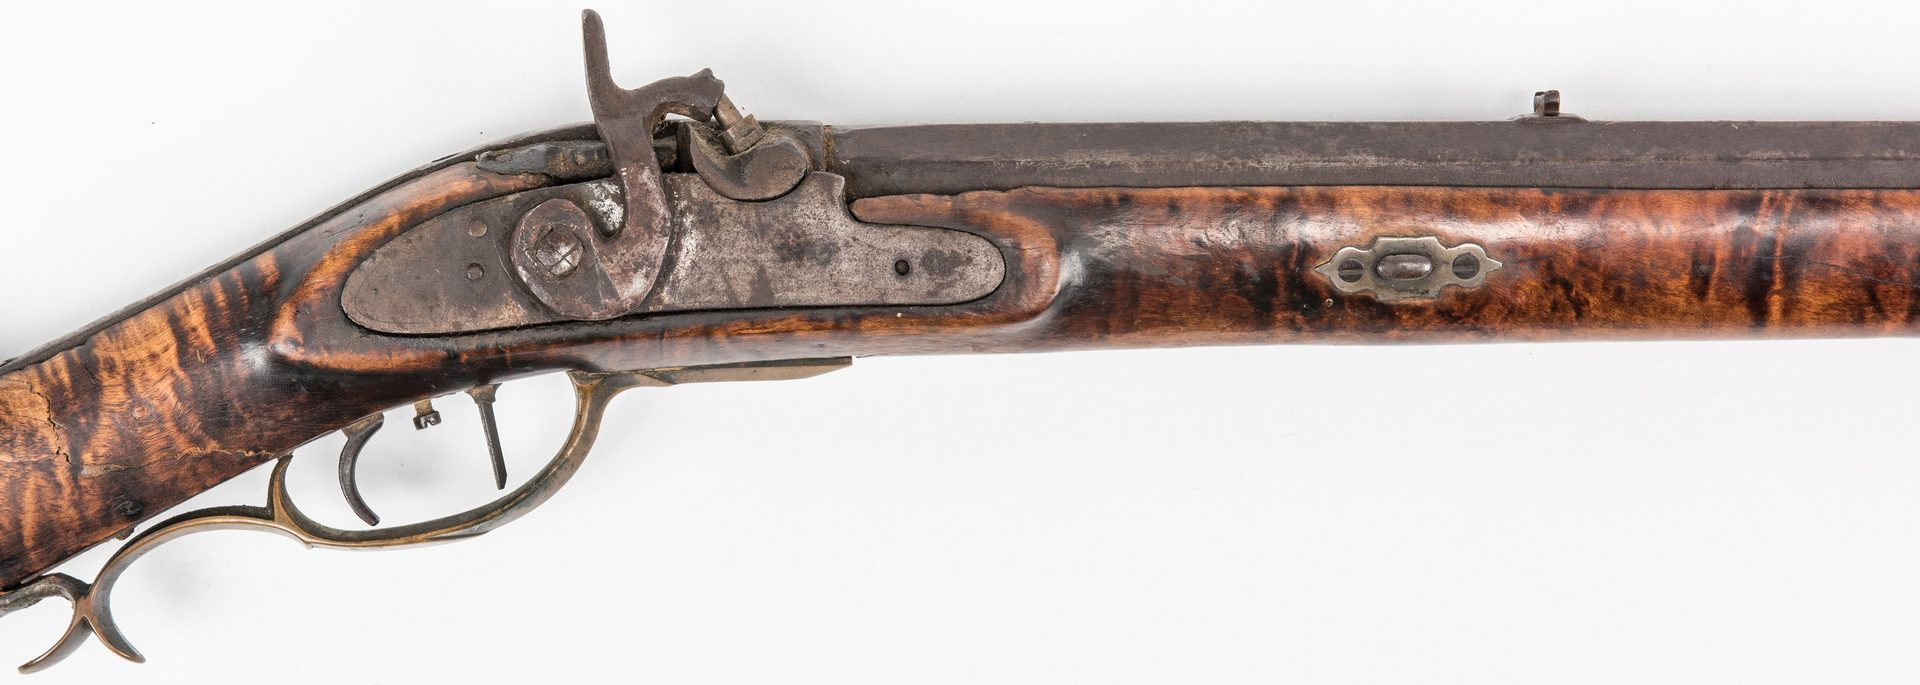 Lot 774: 2 KY Percussion Long Rifles, incl. Pruitt Brother